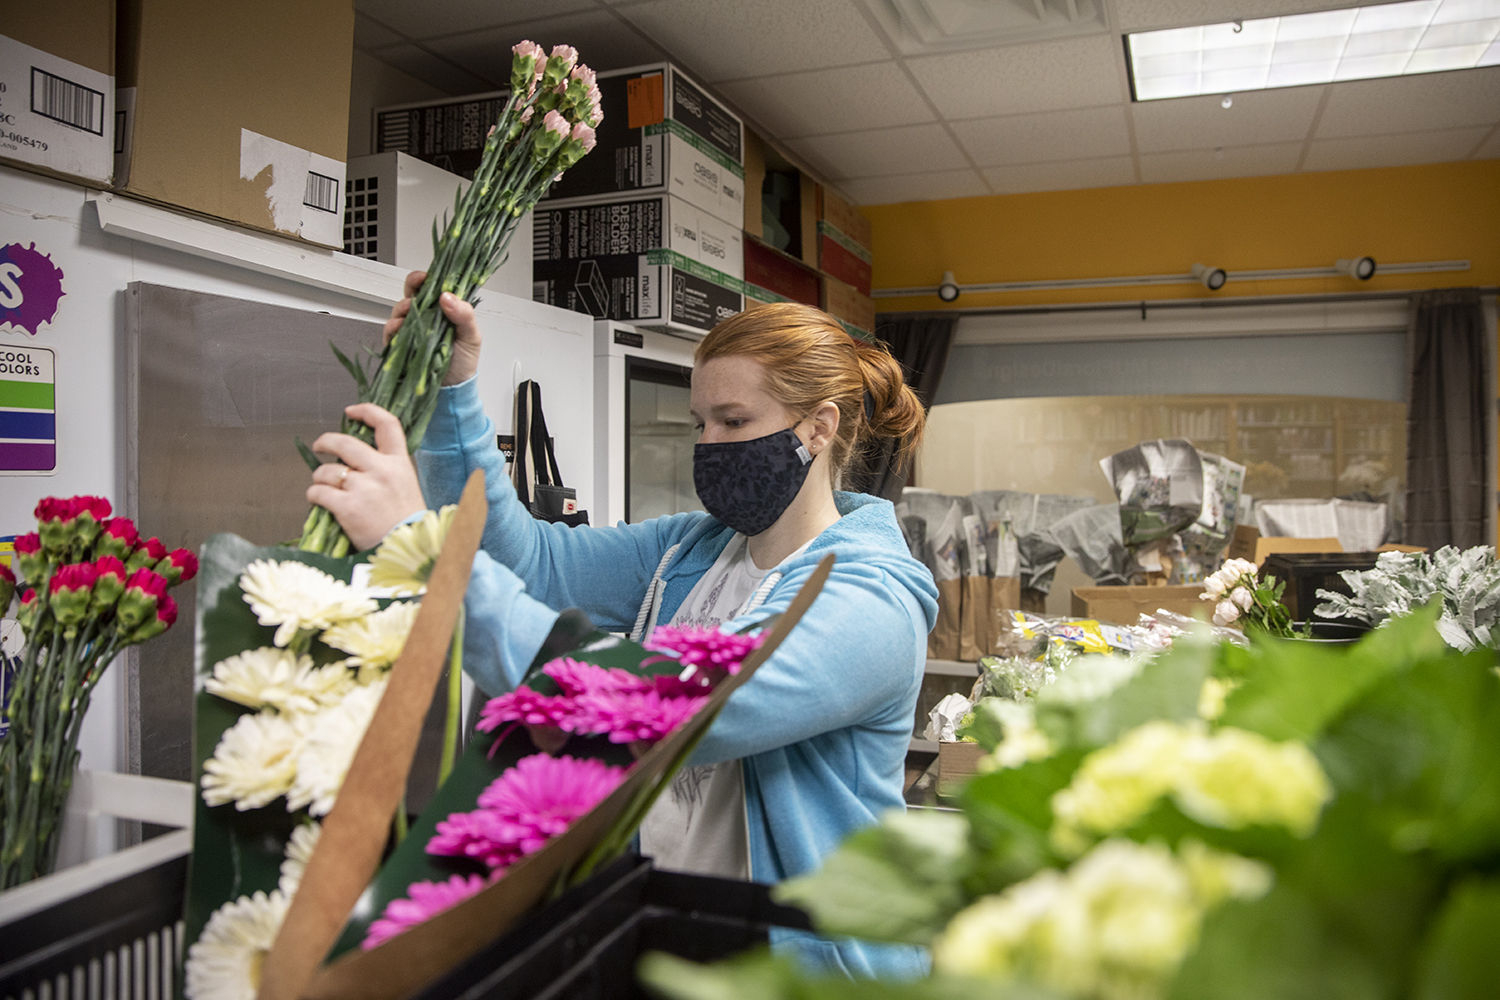 Elise Bailey, a senior agriculture student from Curryville, Missouri, organizes flower deliveries at Tiger Garden.